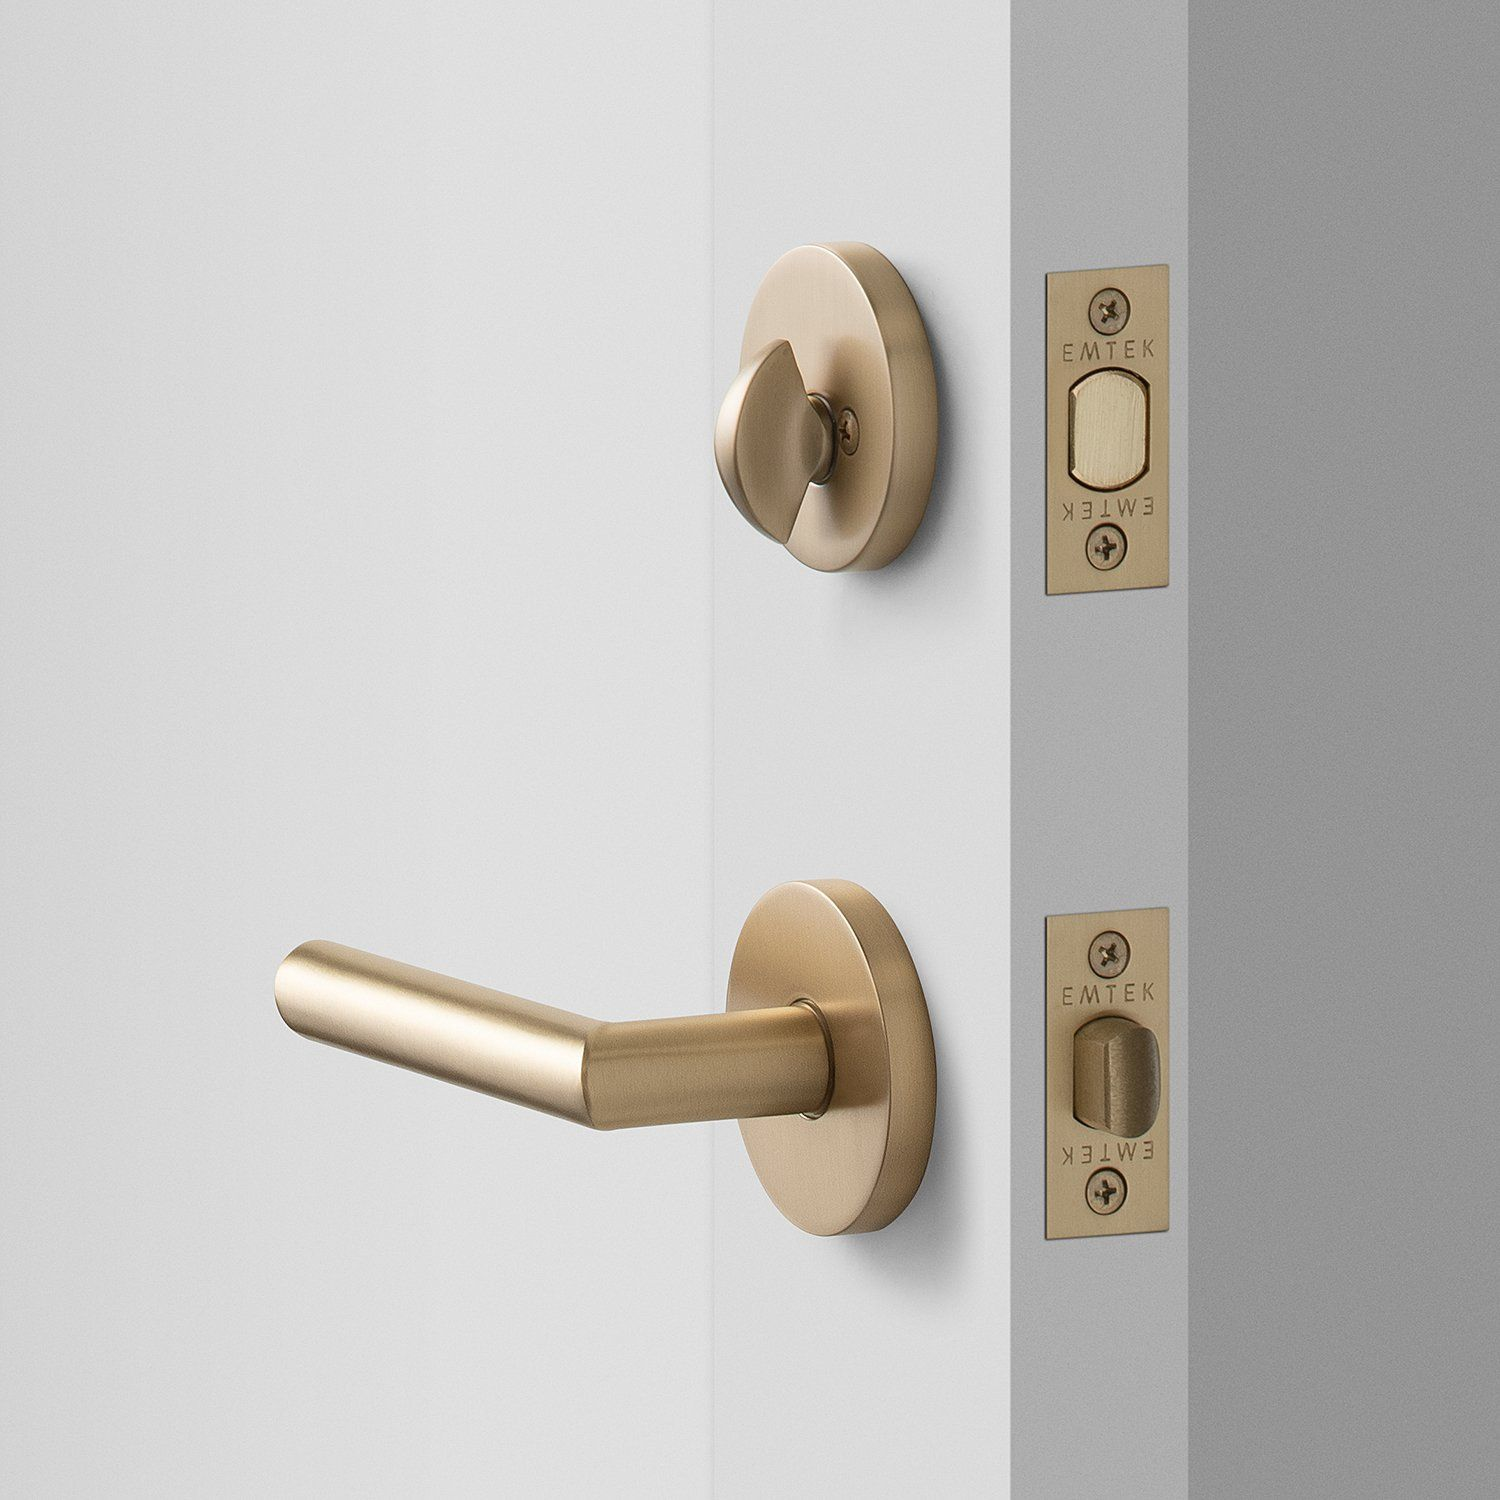 York Door Set With Otto Lever Deadbolt Satin Brass In 2020 Brass Door Handles Door Handles Modern Door Sets